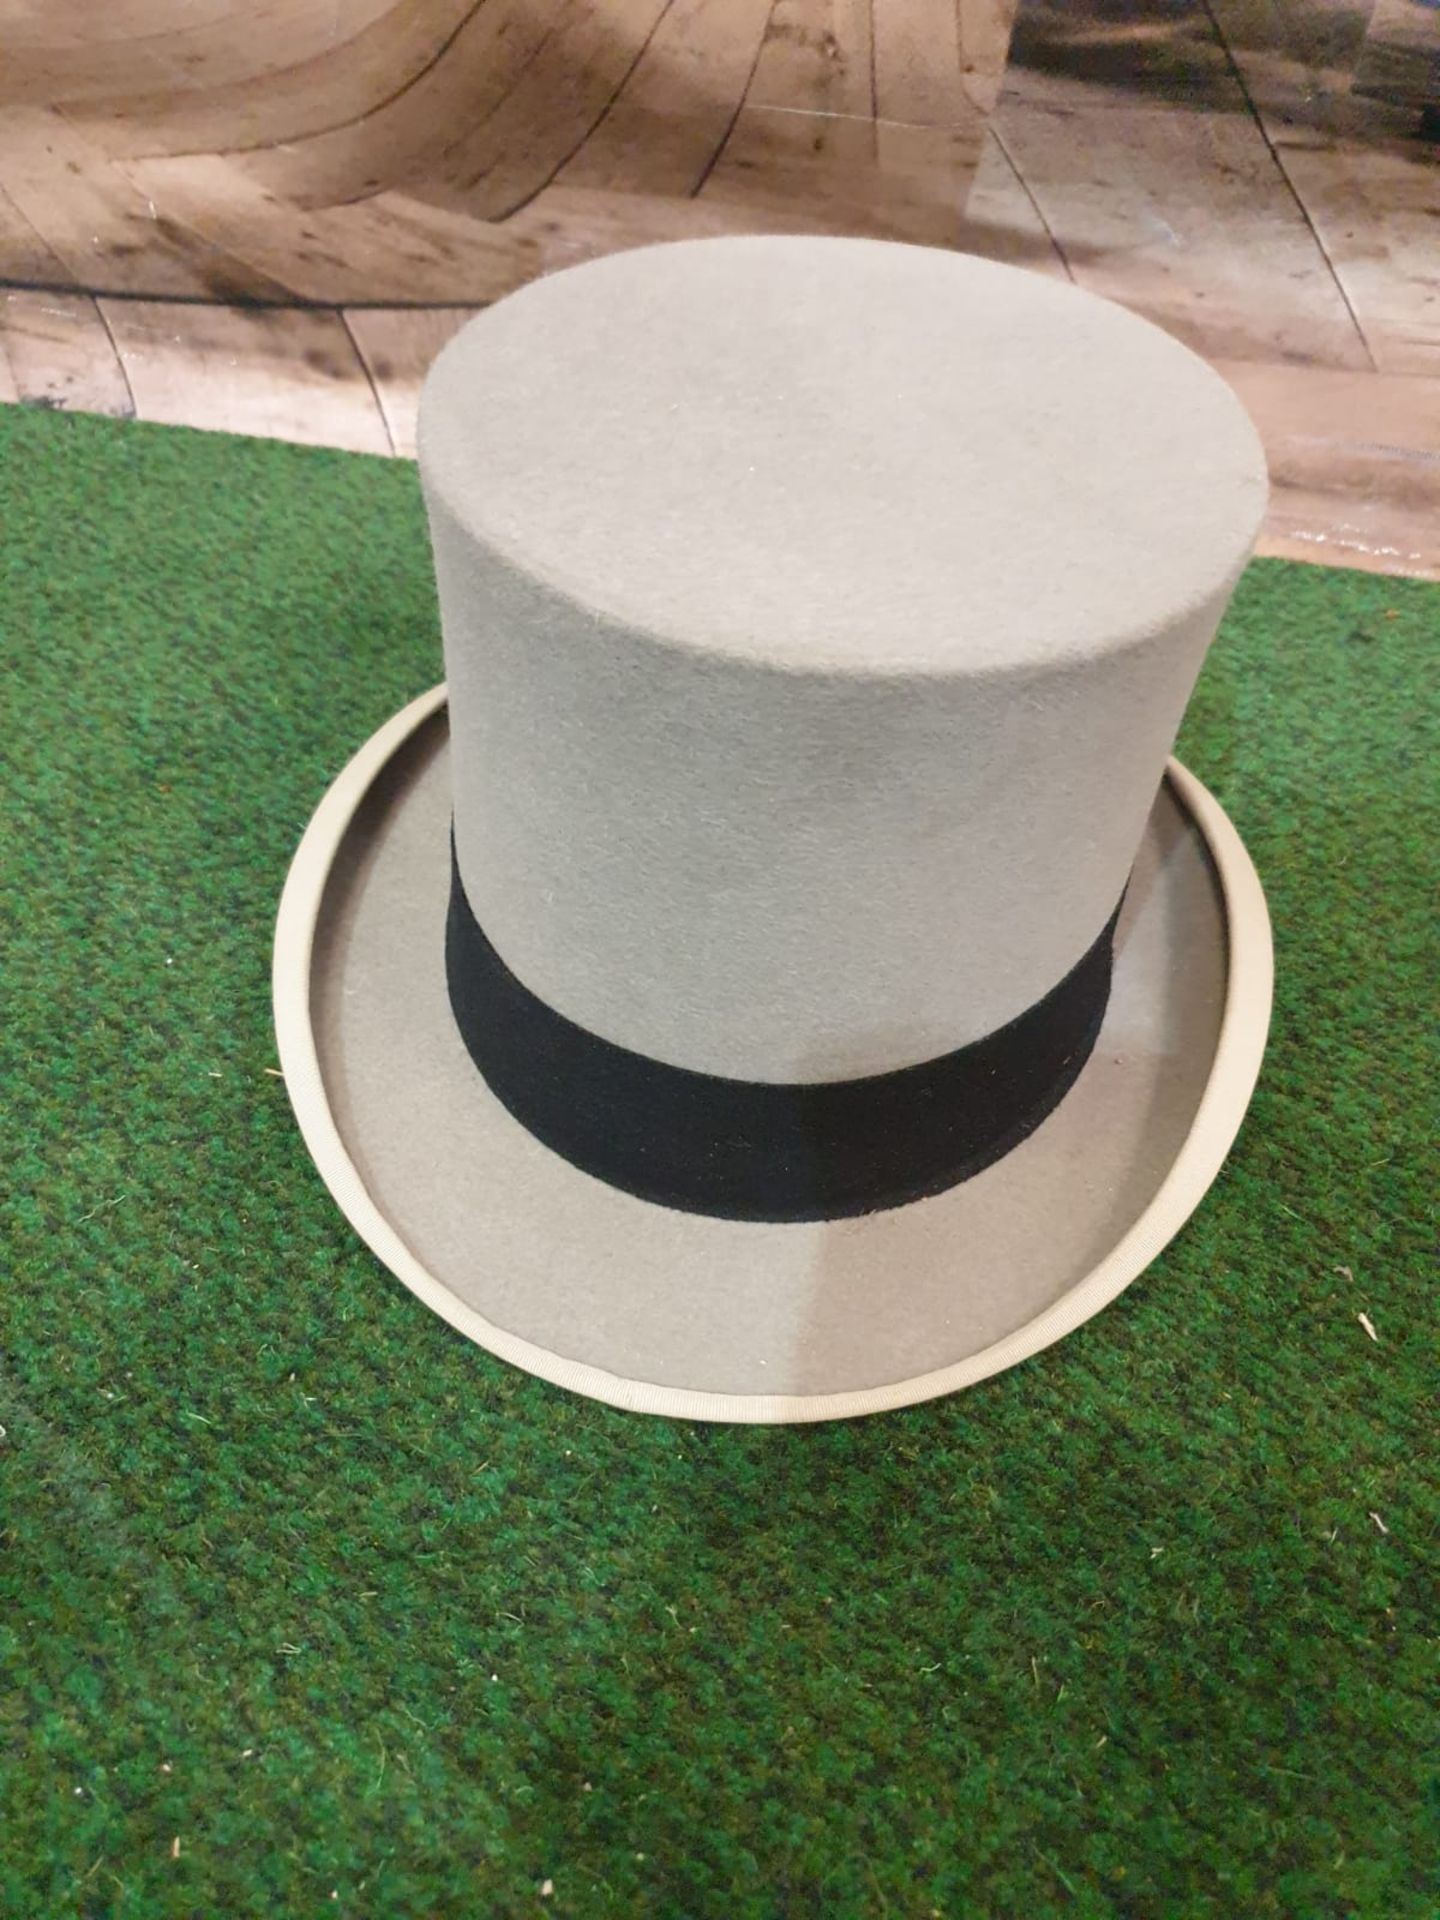 A Hillhouse and Co. of 11 New Bond Street, London, grey top hat in original hat box